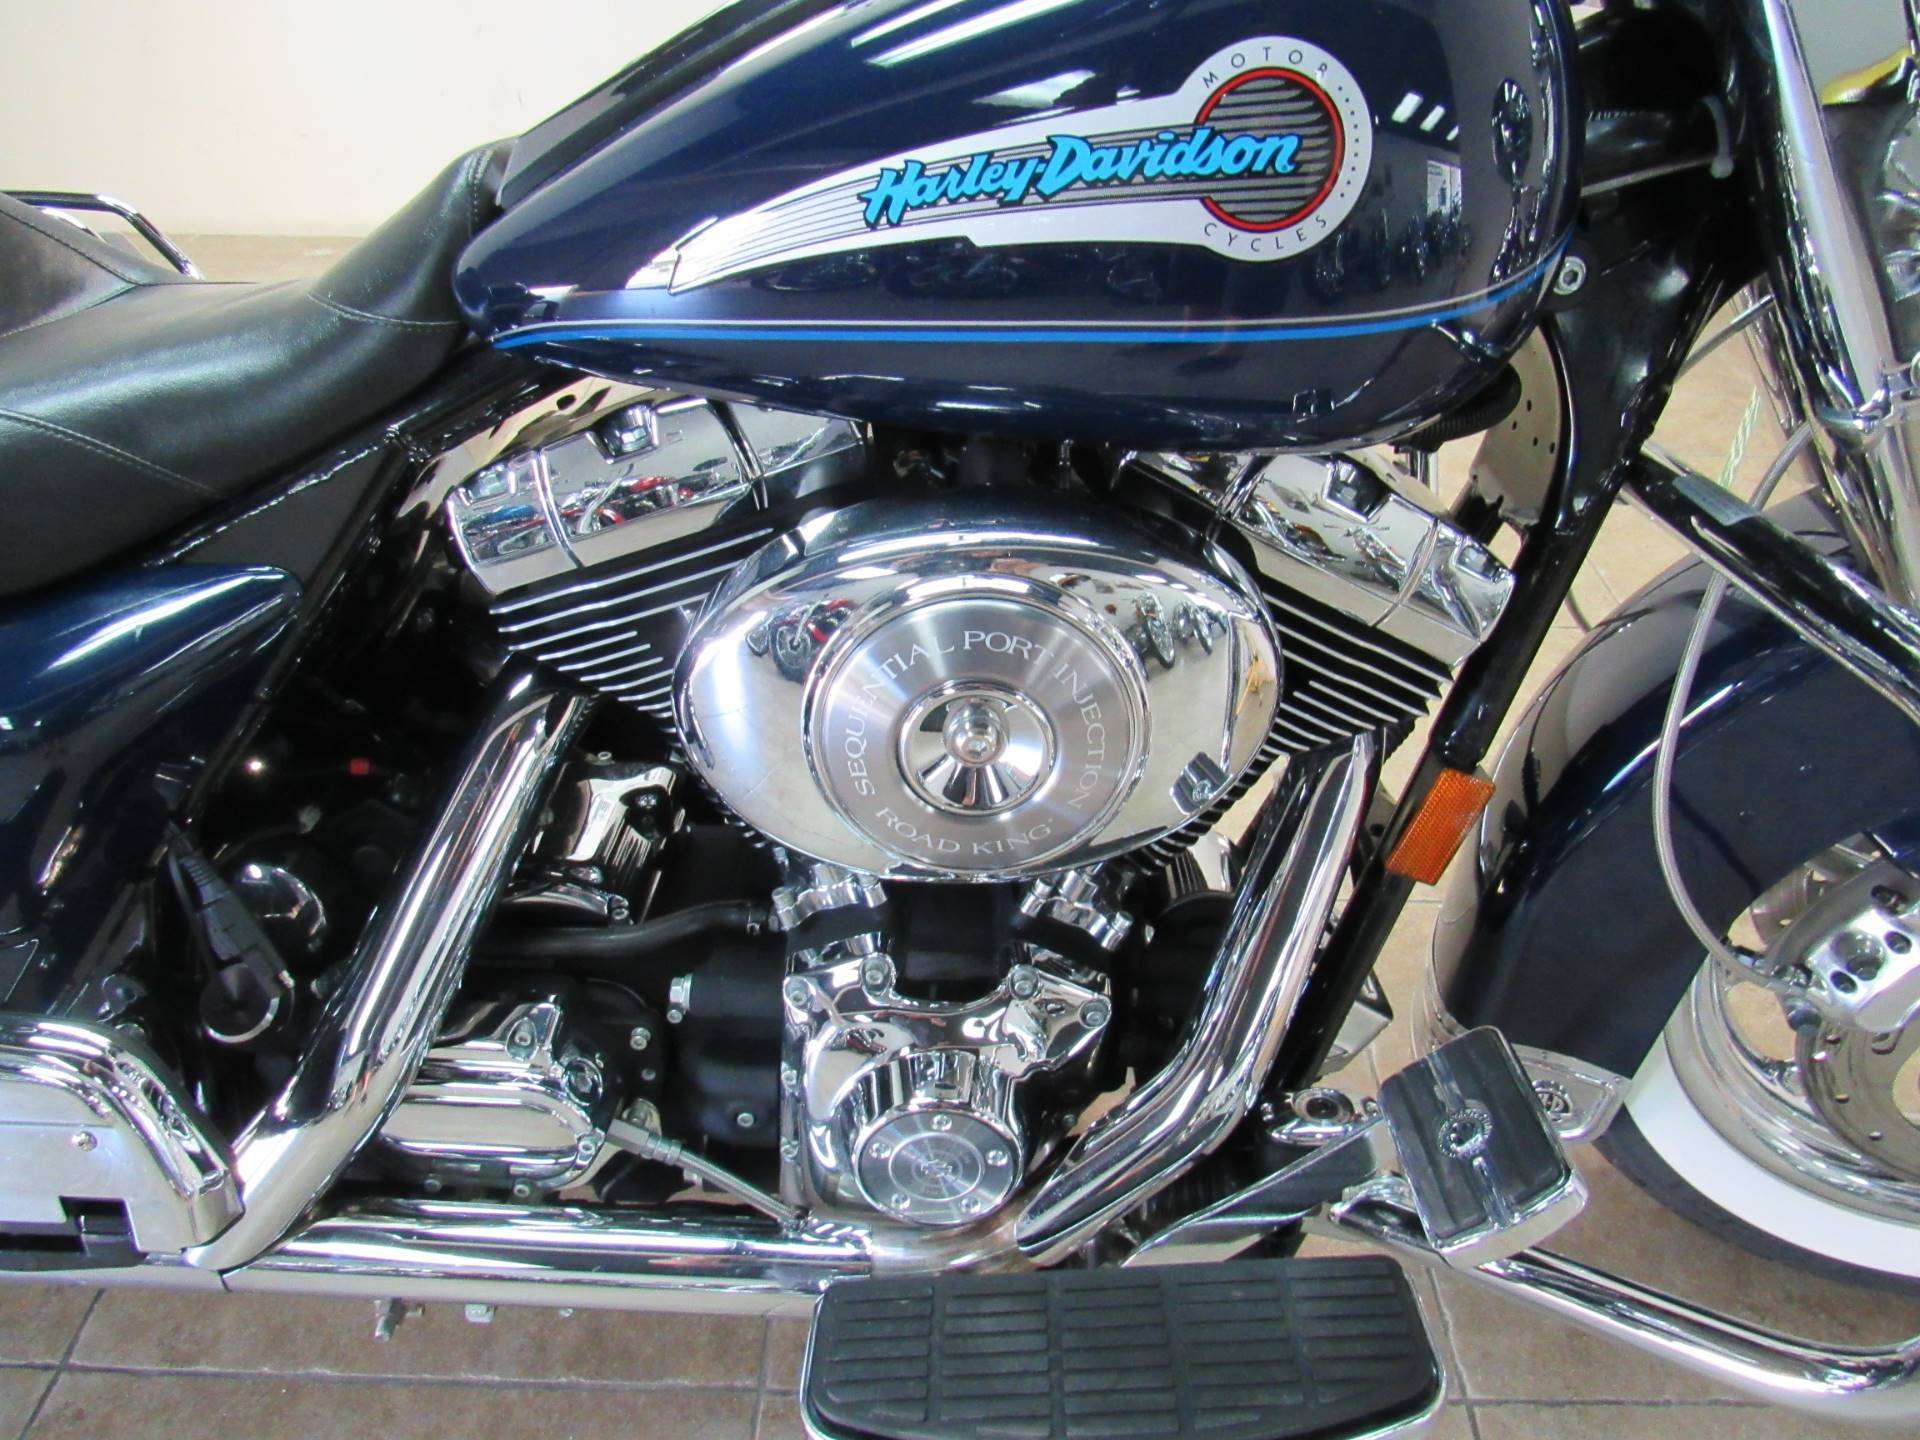 2004 Harley-Davidson Peace Officer Special Edition in Temecula, California - Photo 7